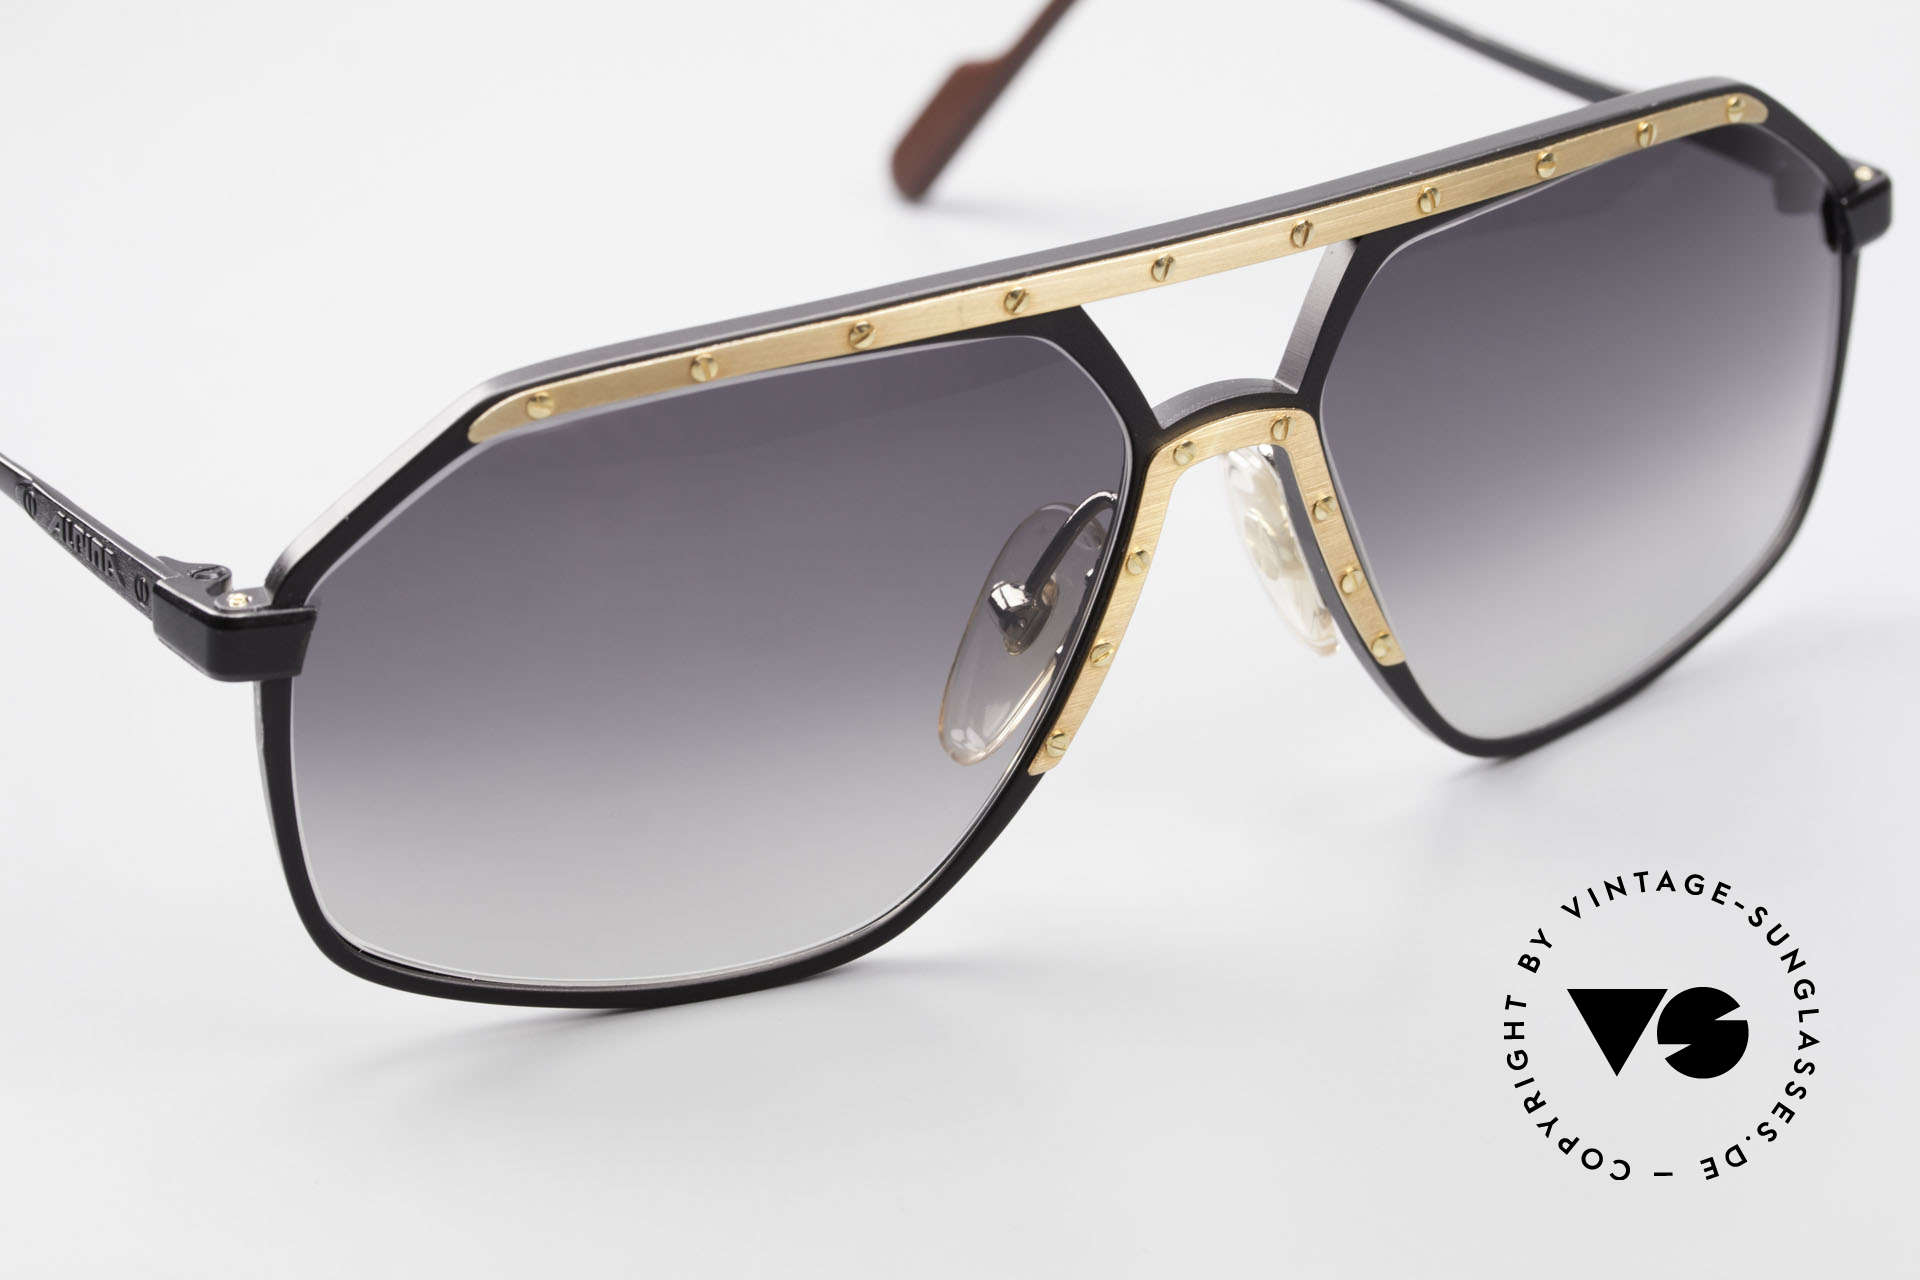 Alpina M6 No Retro Shades True Vintage, one of the most wanted vintage models, worldwide, Made for Men